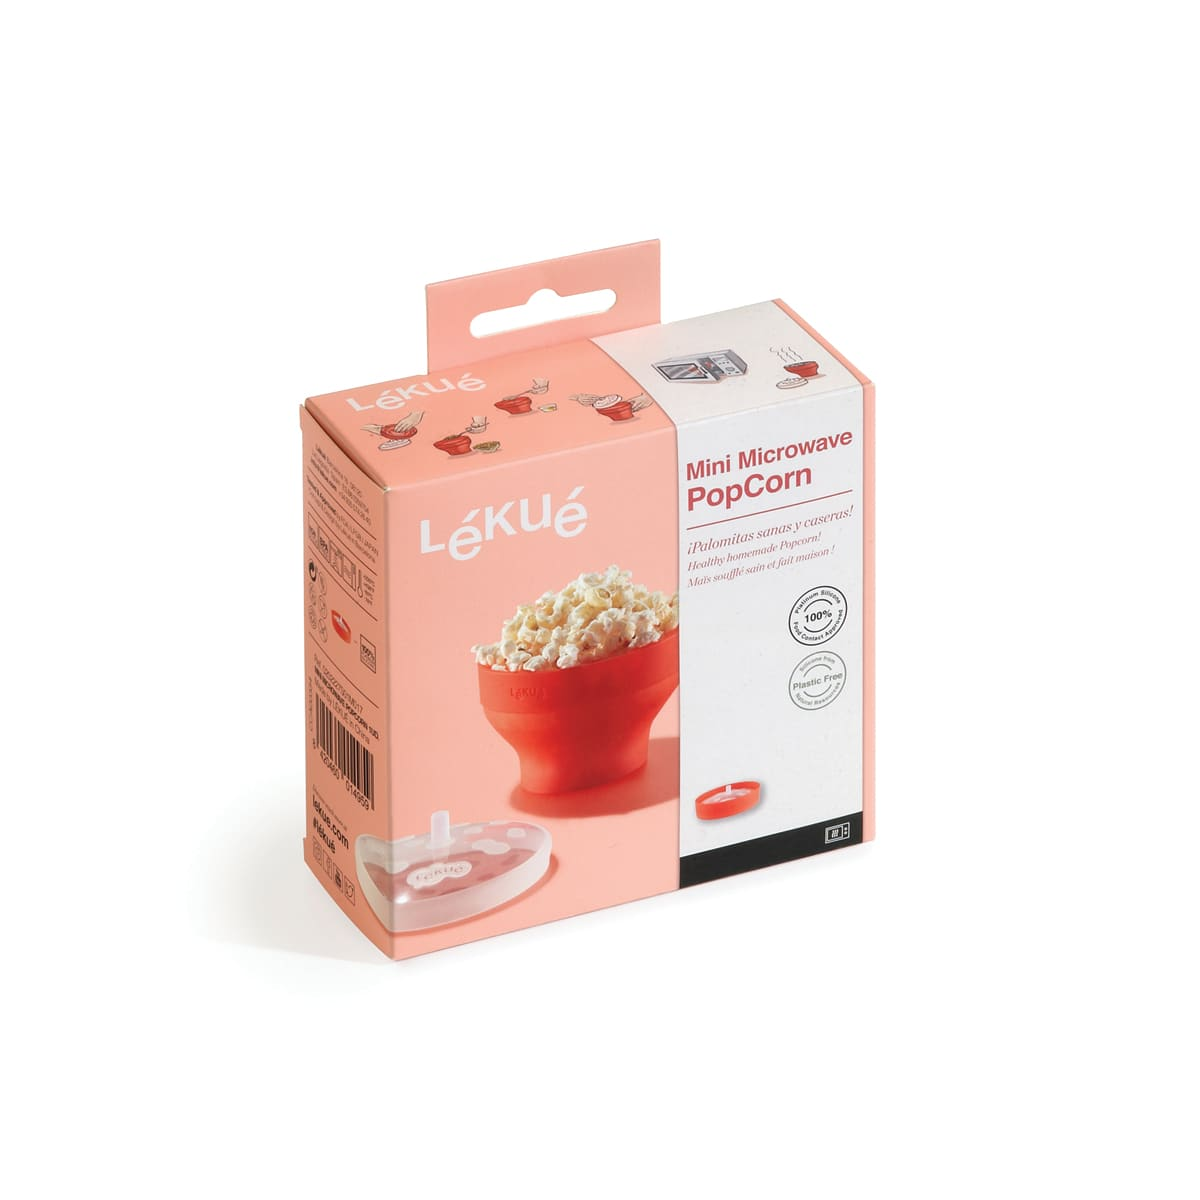 Lekue Mini Microwave Popcorn Popper, homemade popcorn in 3 minutes, can be folded, 100% Silicone Platinum, suitable for microwave, dishwasher, fridge, capacity 2800 ml